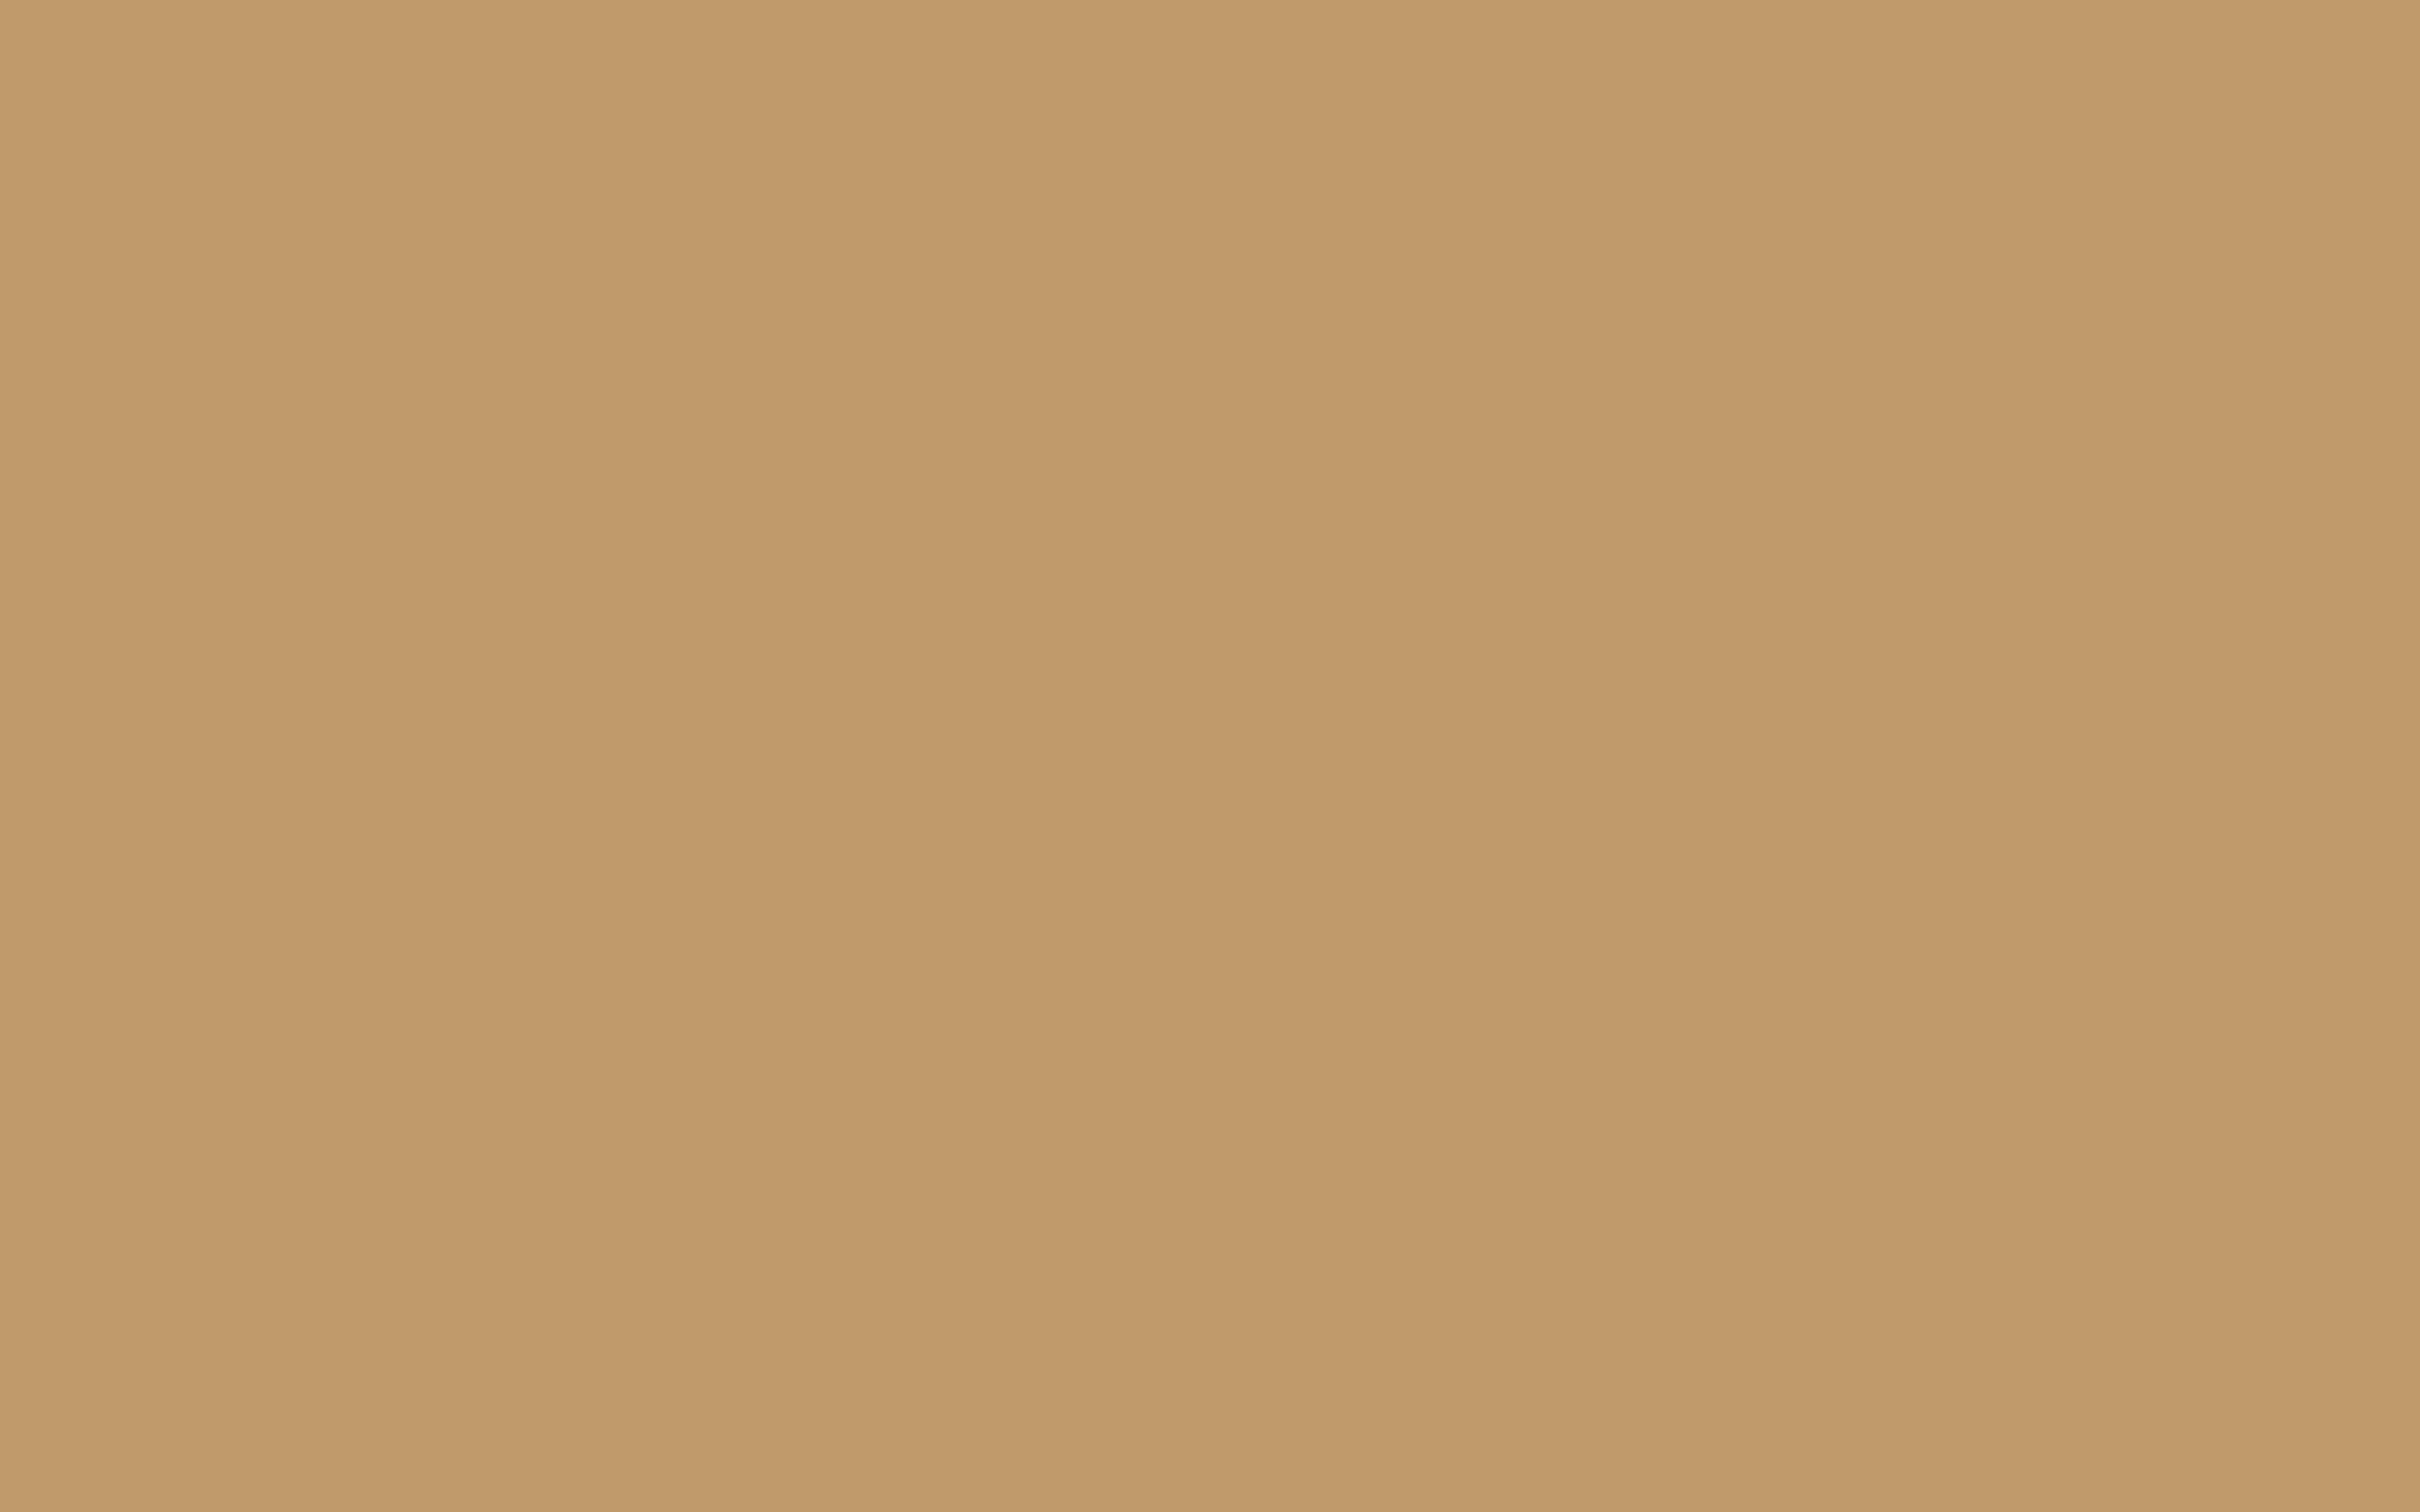 2880x1800 Wood Brown Solid Color Background